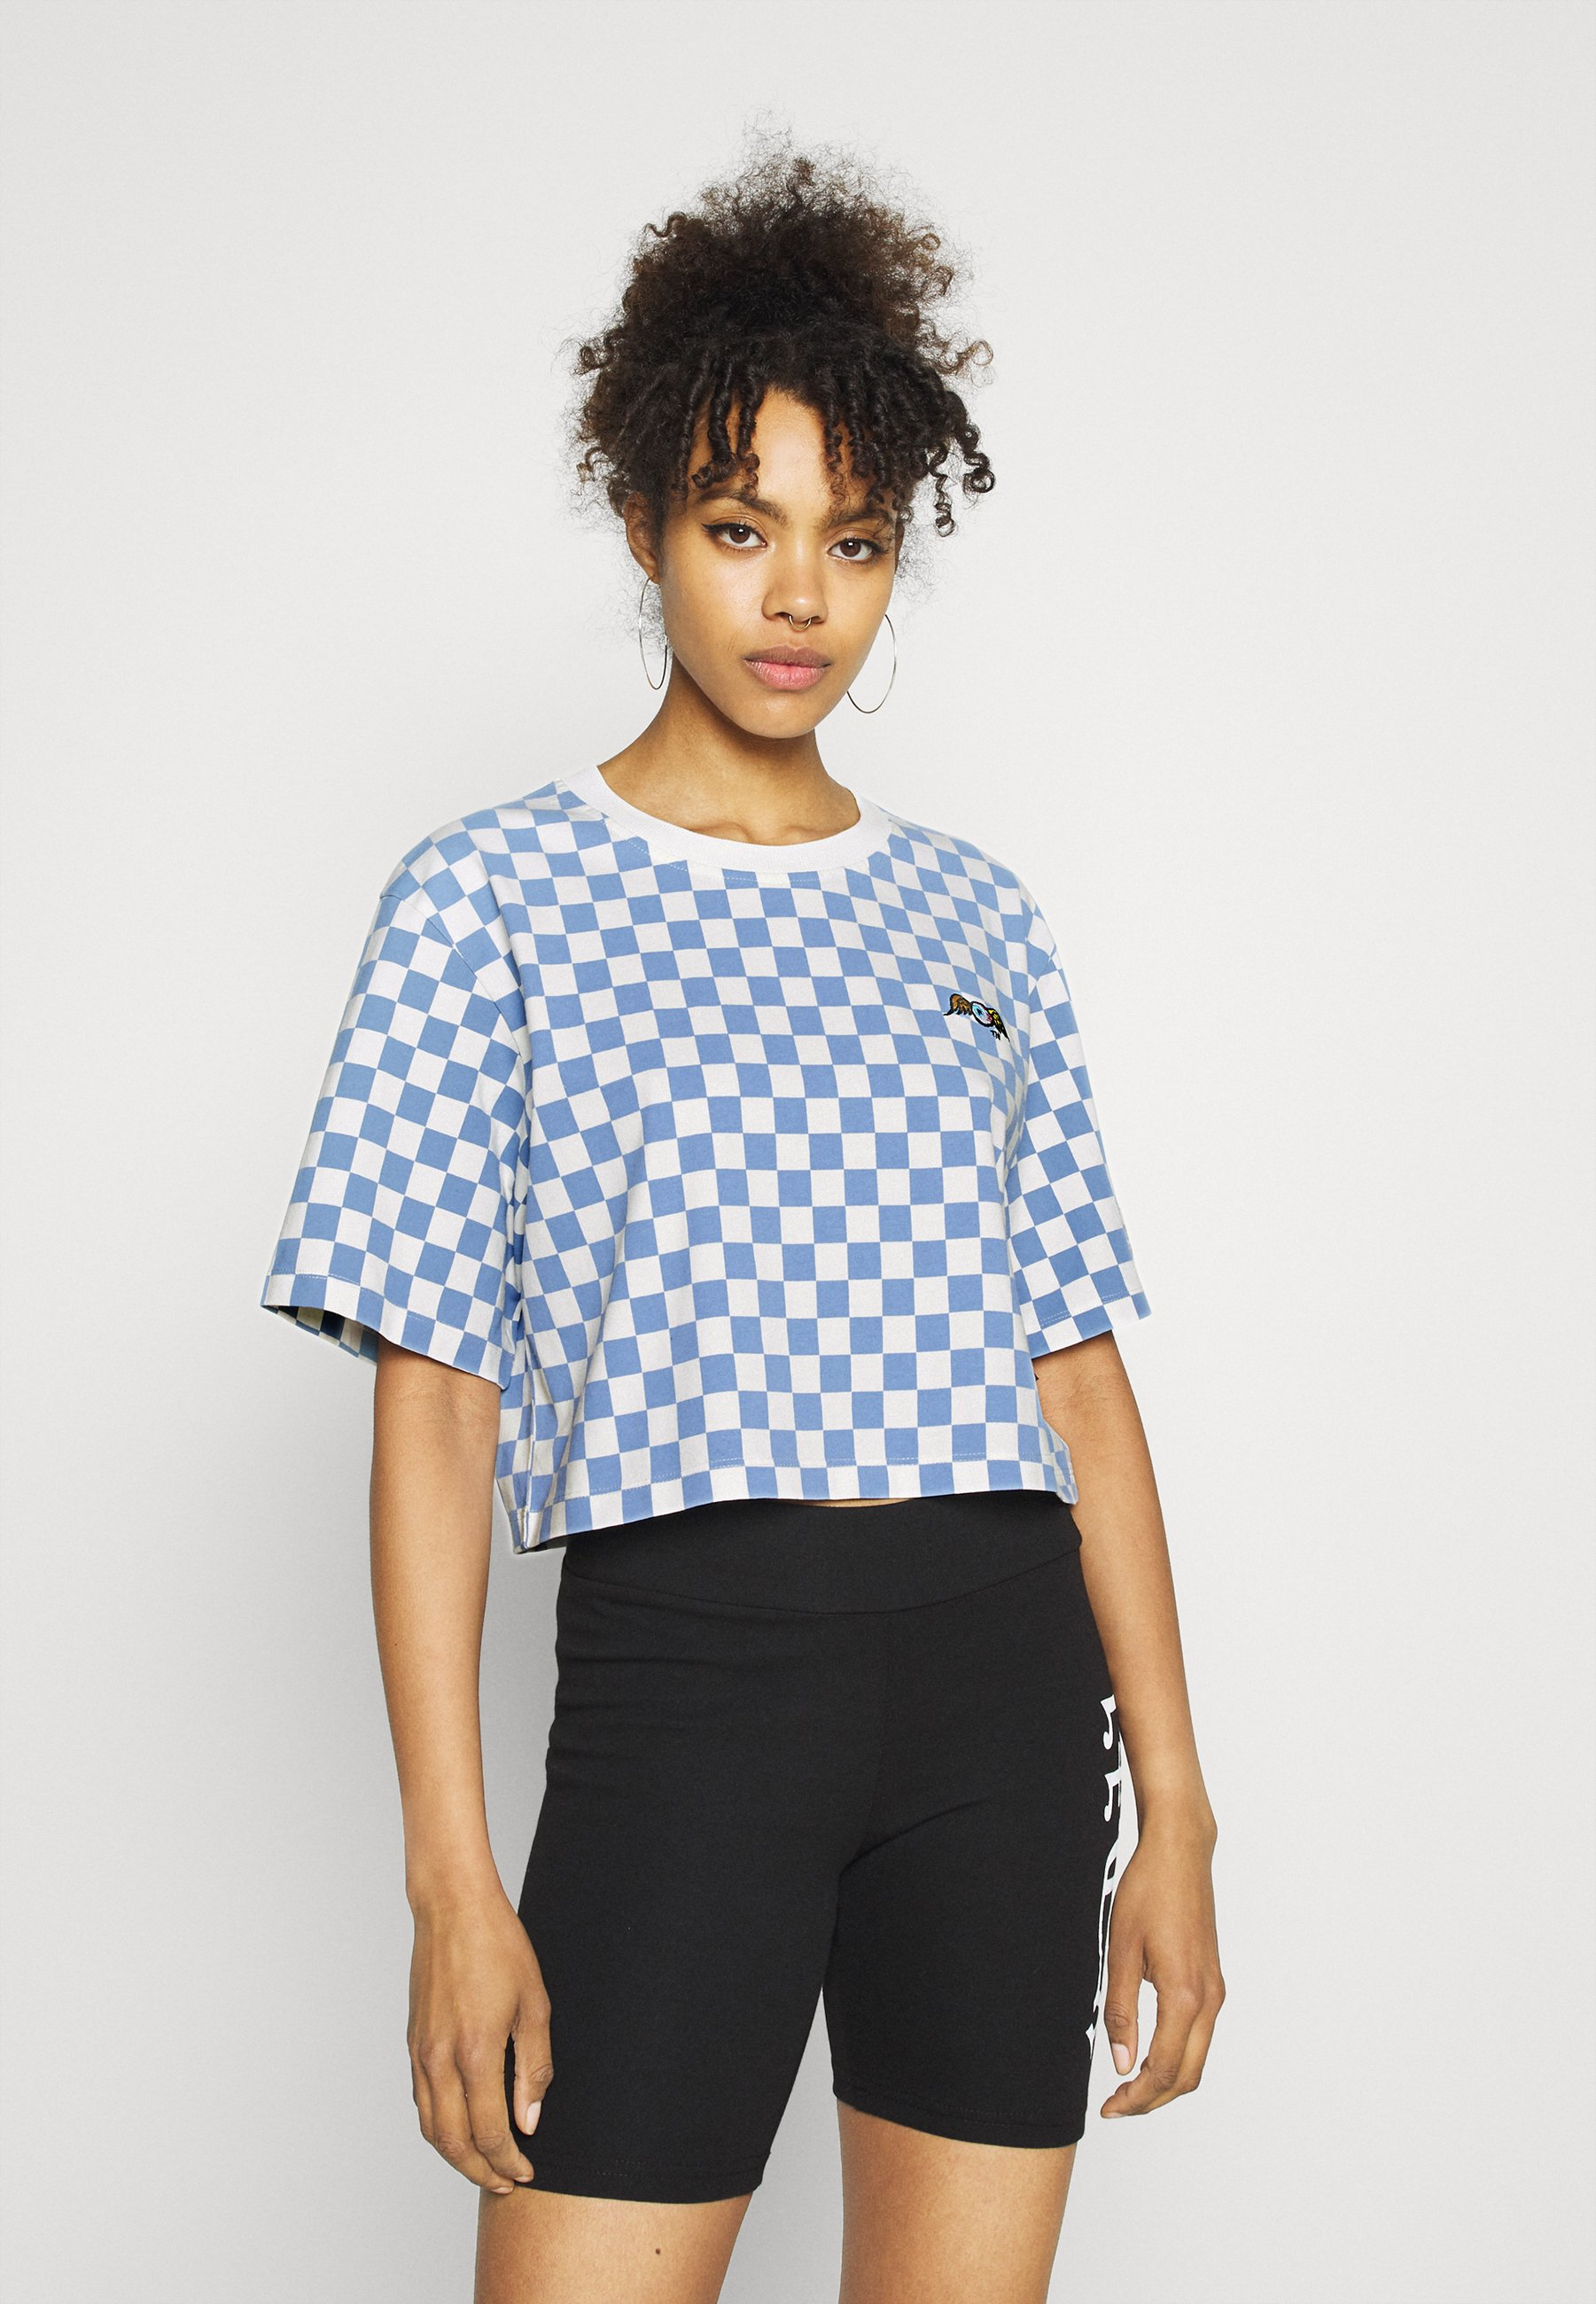 Donna CHESSBOARD TEE - T-shirt con stampa